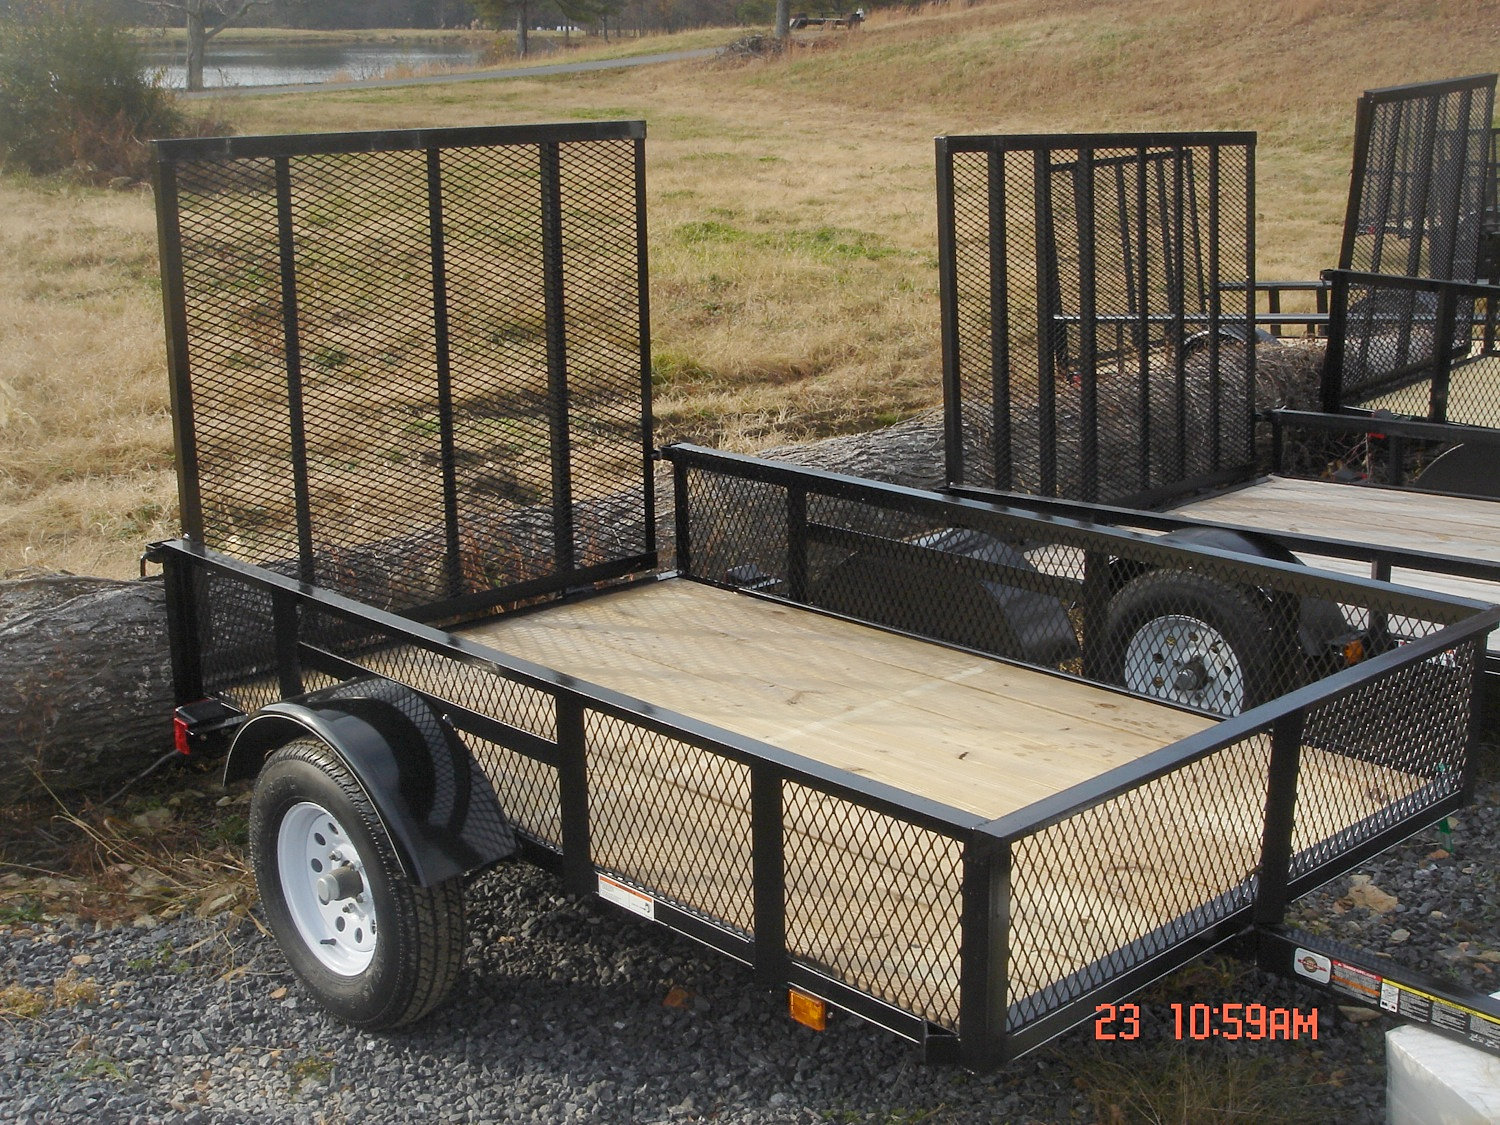 home depot enclosed trailers with Collectioncdwn Cargo Trailers 5x8 on Collectioncdwn Cargo Trailers 5x8 also ladderracks also Trailer And Truck Bed Inventory Listing Trailer Depot also Us Cargo 6 X 10 Enclosed Cargo Trailer Double Rear Doors besides Mytrailerdepot.